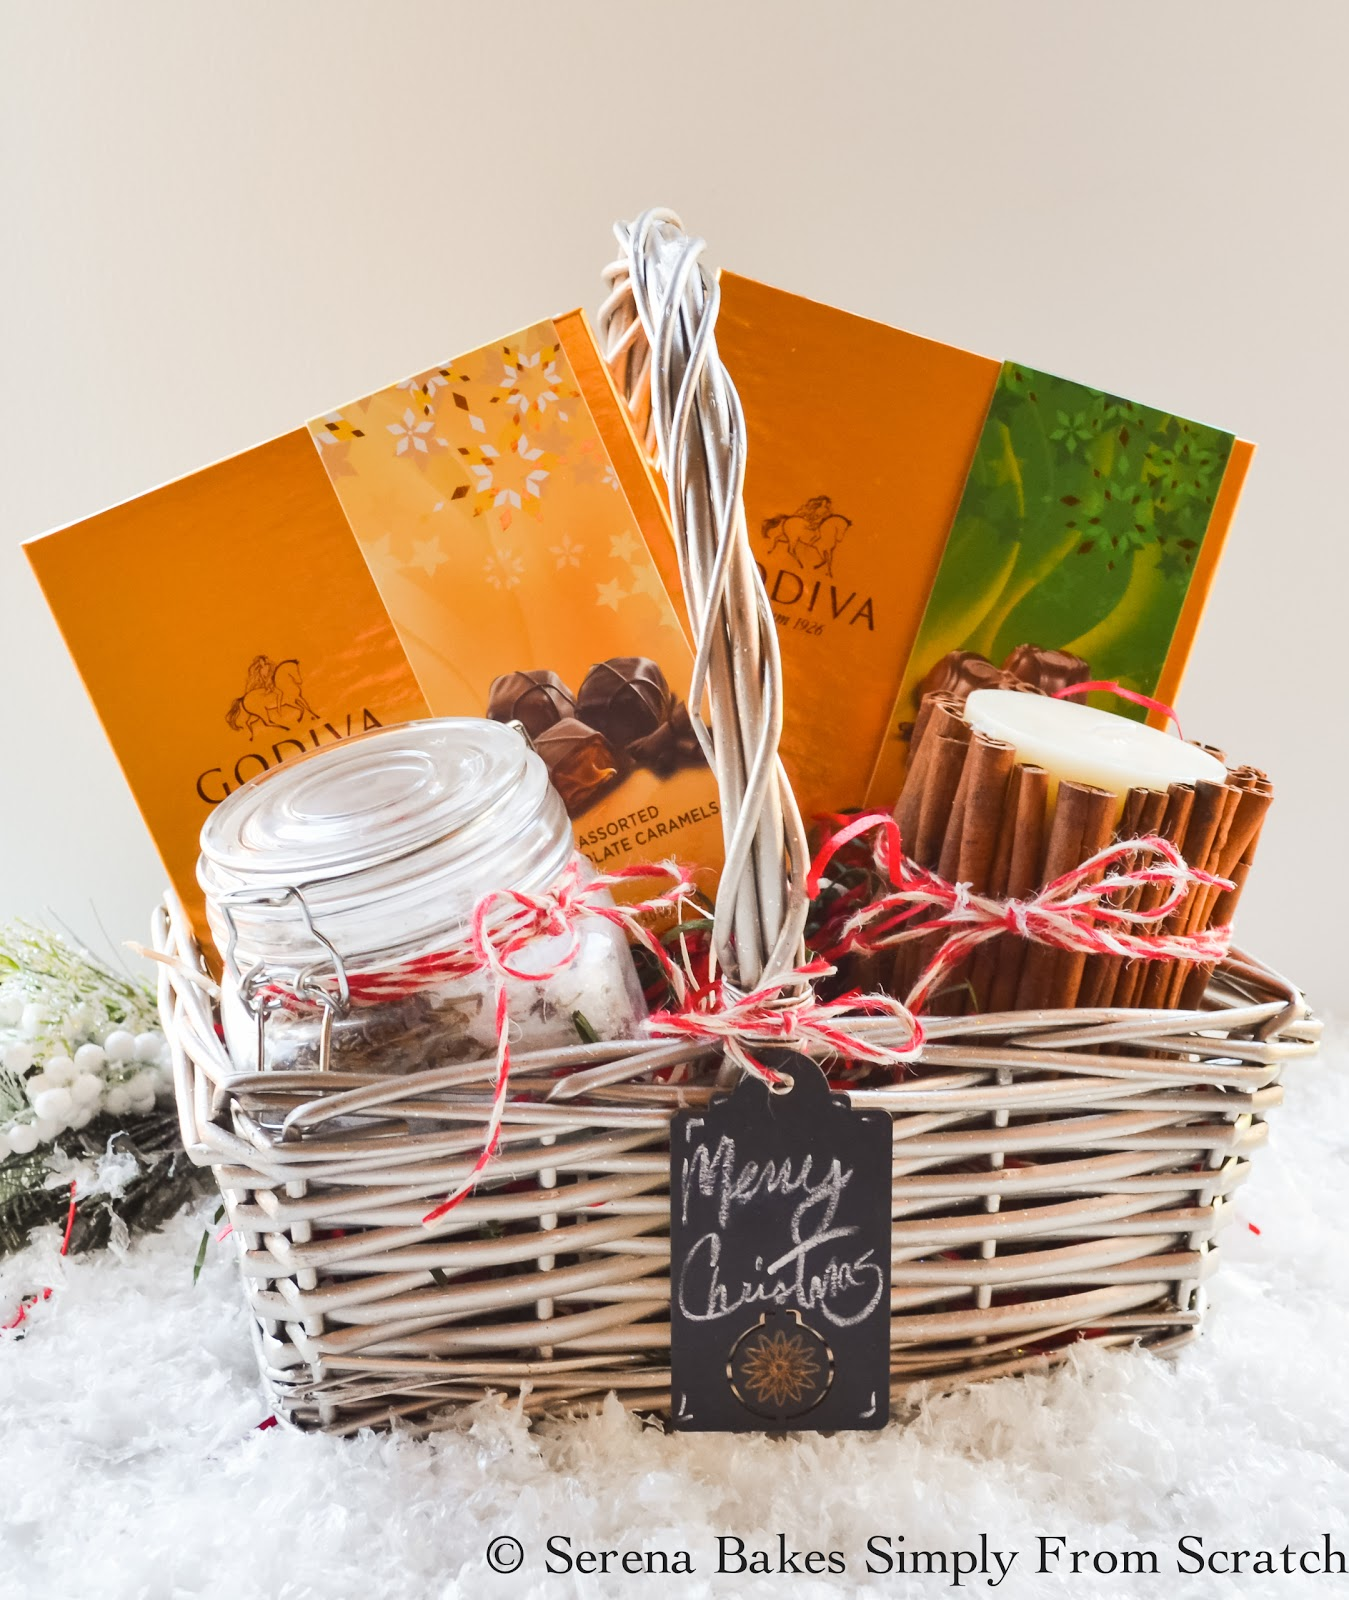 holiday gift basket ideas with fun ideas for teenagers men or women including a diy